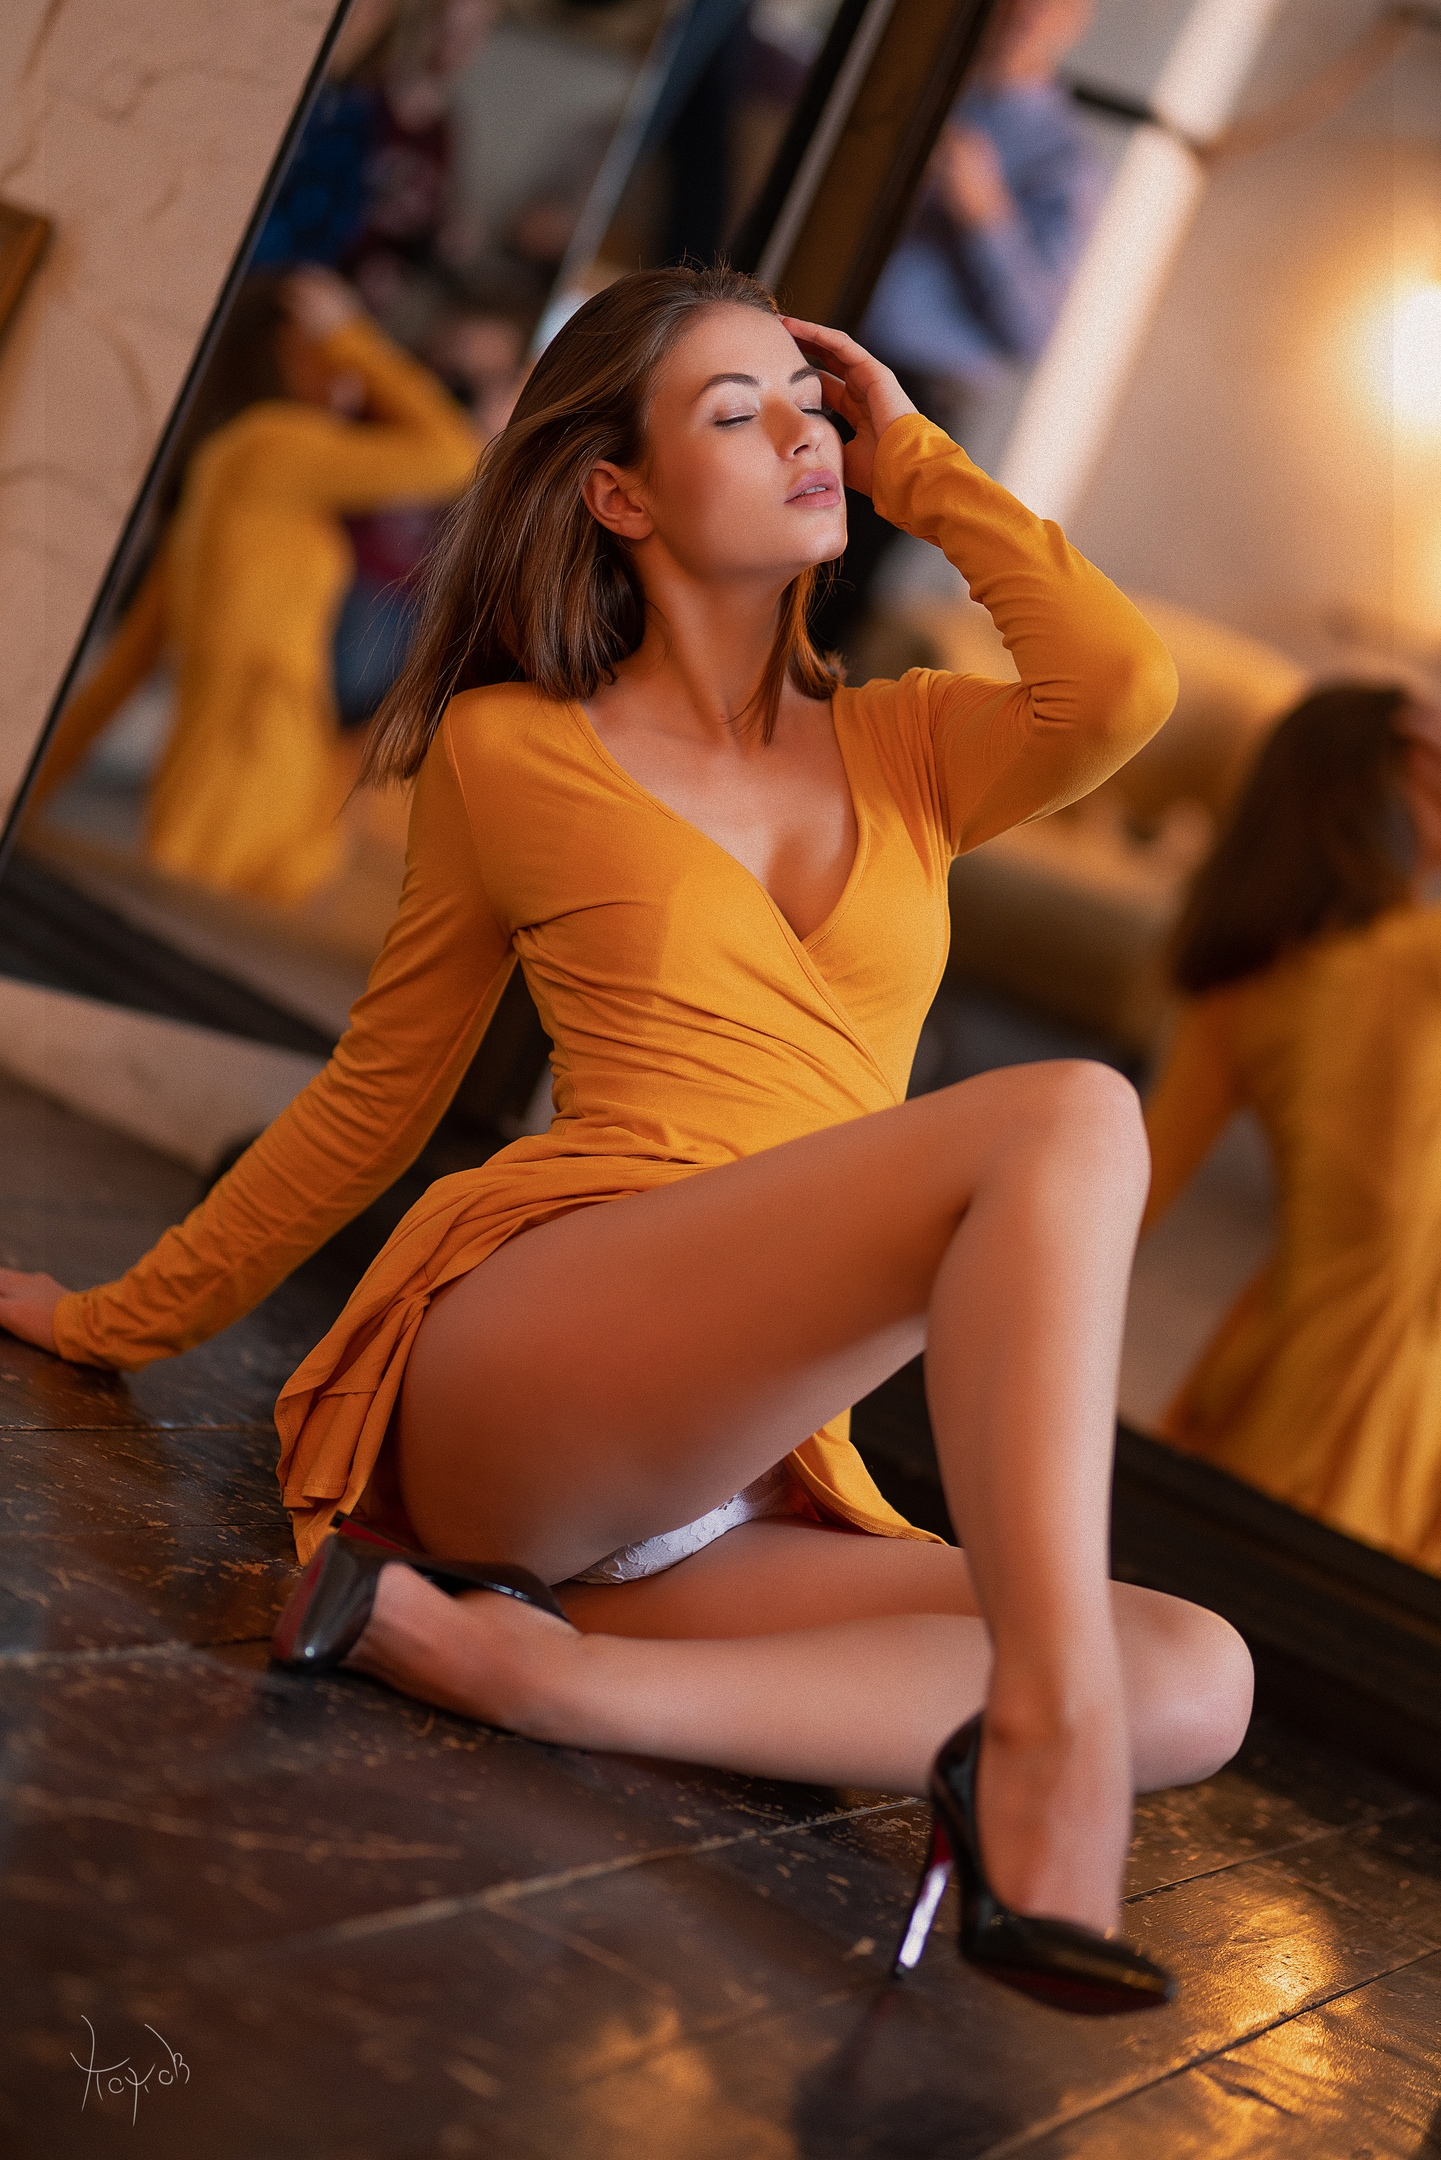 People 1441x2160 Andrey Popov women Viktoriia Aliko brunette long hair straight hair makeup closed eyes dress orange clothing cleavage lingerie panties shoes high heels depth of field mirror reflection Studio model white panties wooden floor upskirt